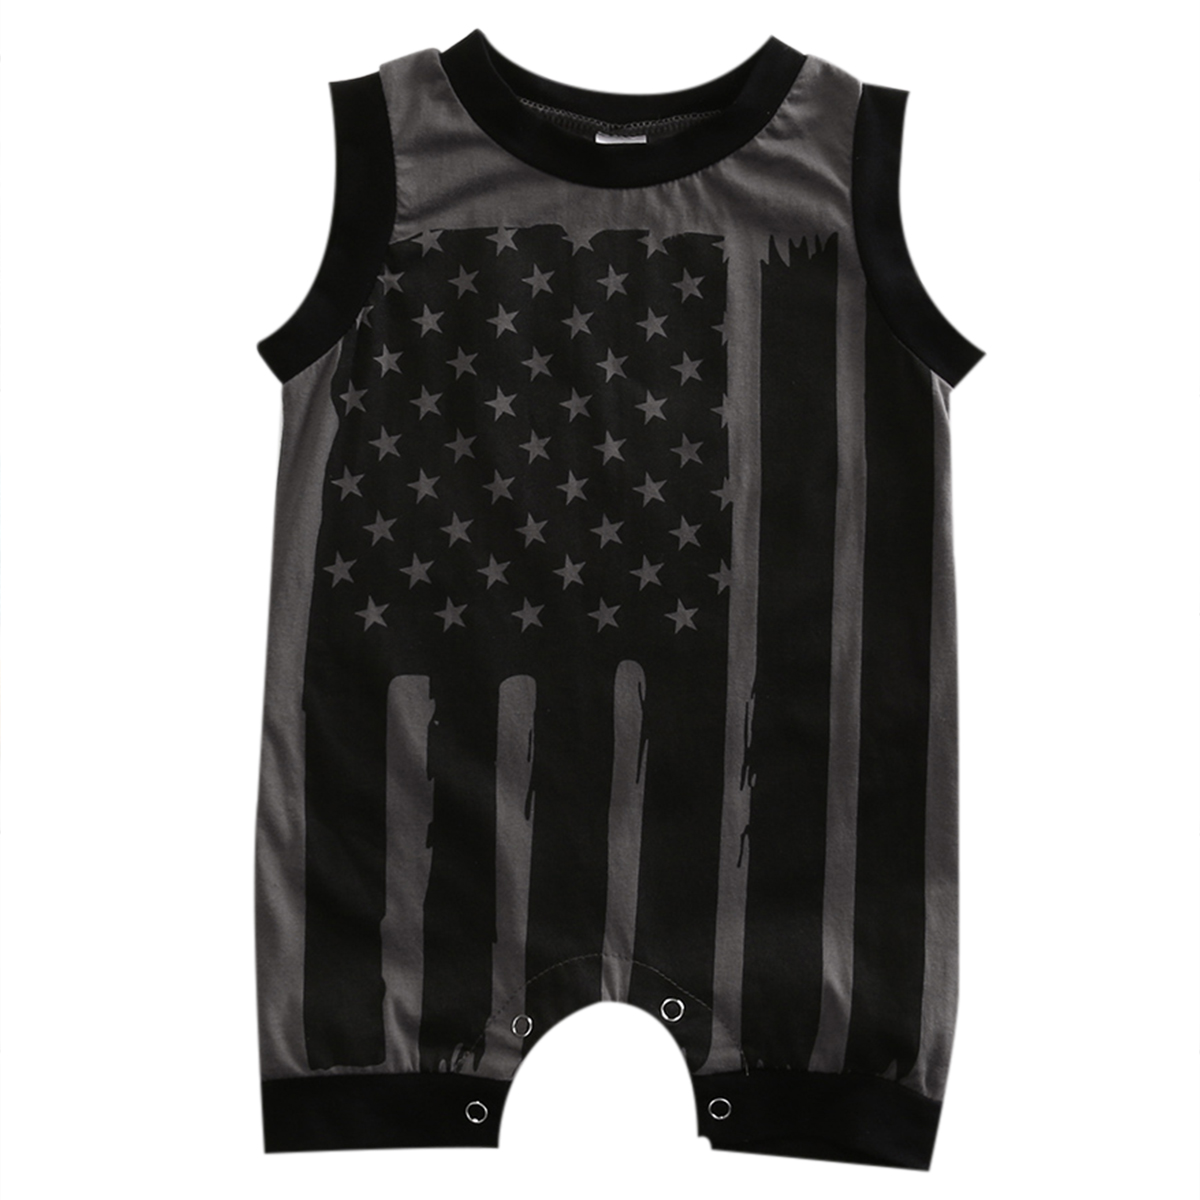 Summer 2017 Newborn Toddler Kids Baby Boys Girls Sleeveless Striped Flag Romper Jumpsuit Clothes Outfits